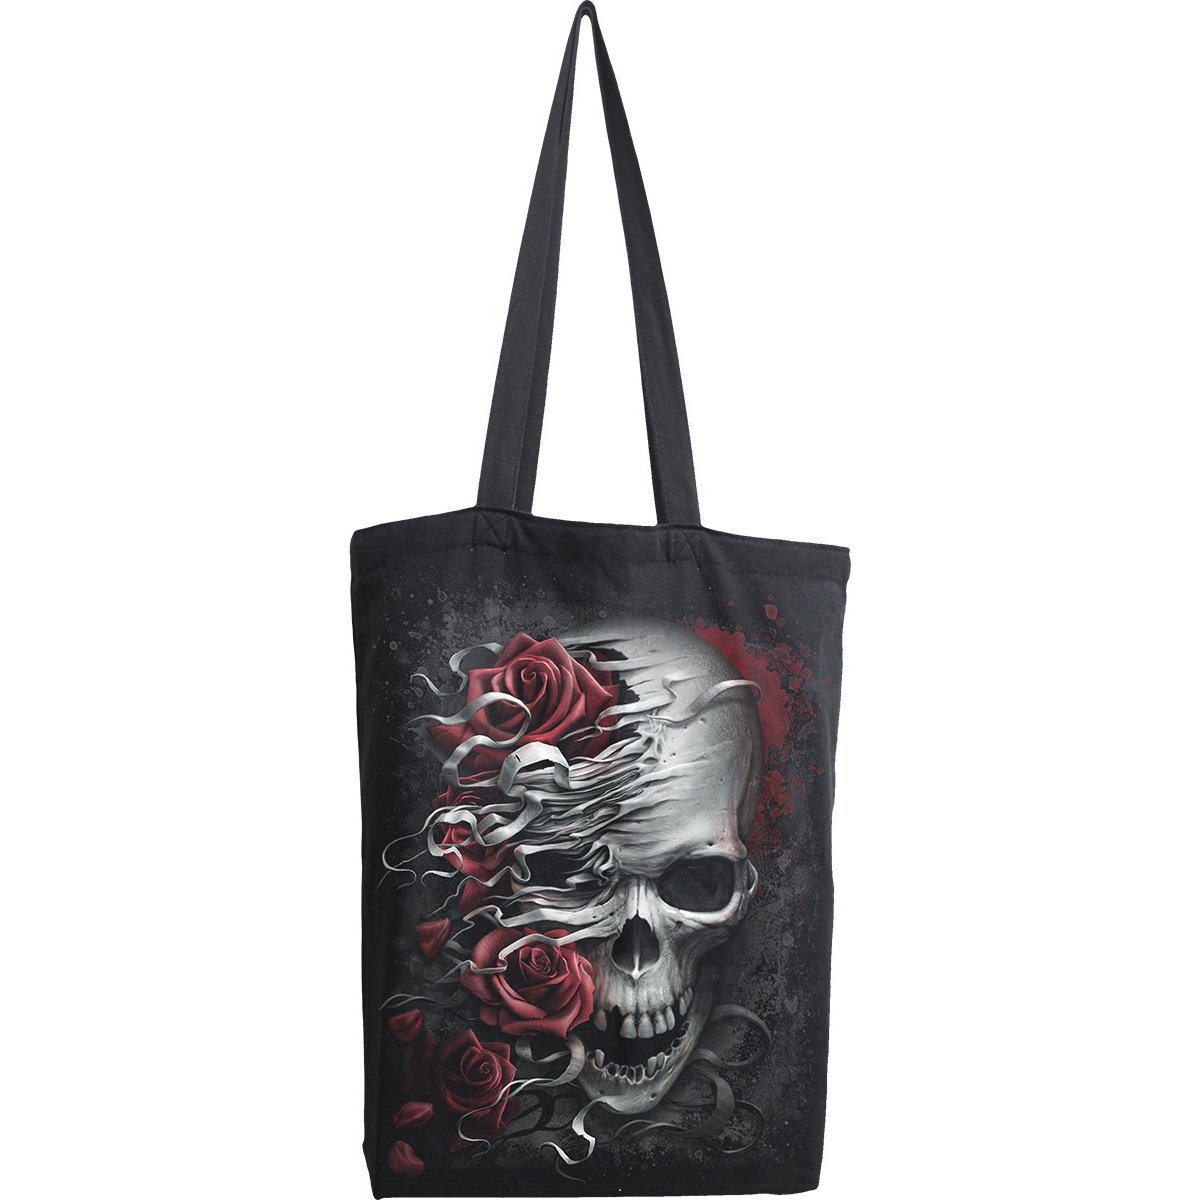 Skull and Roses Cloth Tote Bag